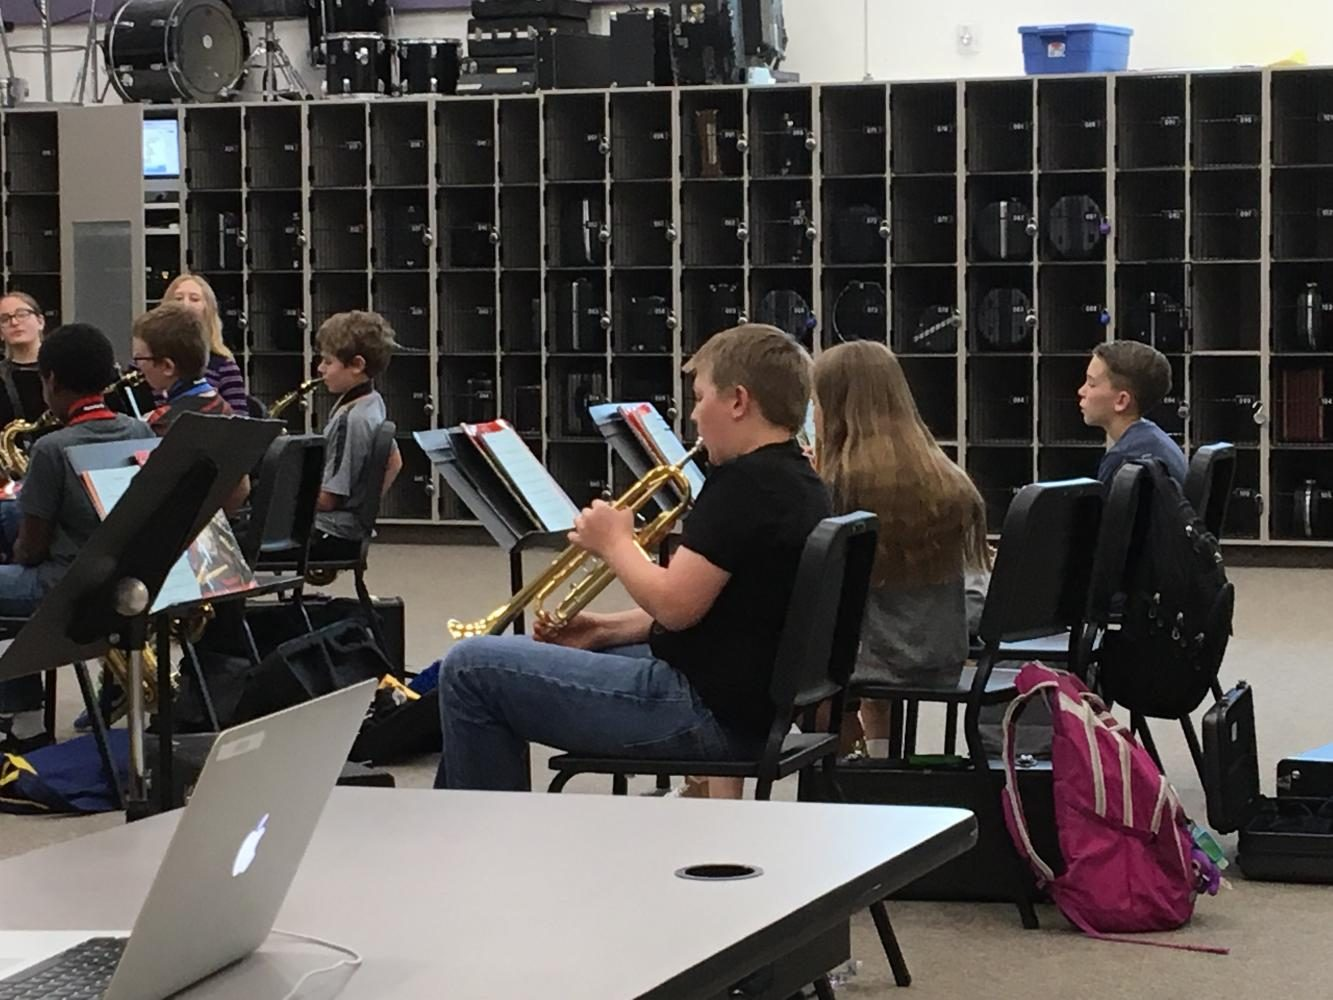 Mr. Voght's students in his 4a class are practicing their instruments. This photo was taken on April 24 in his classroom.